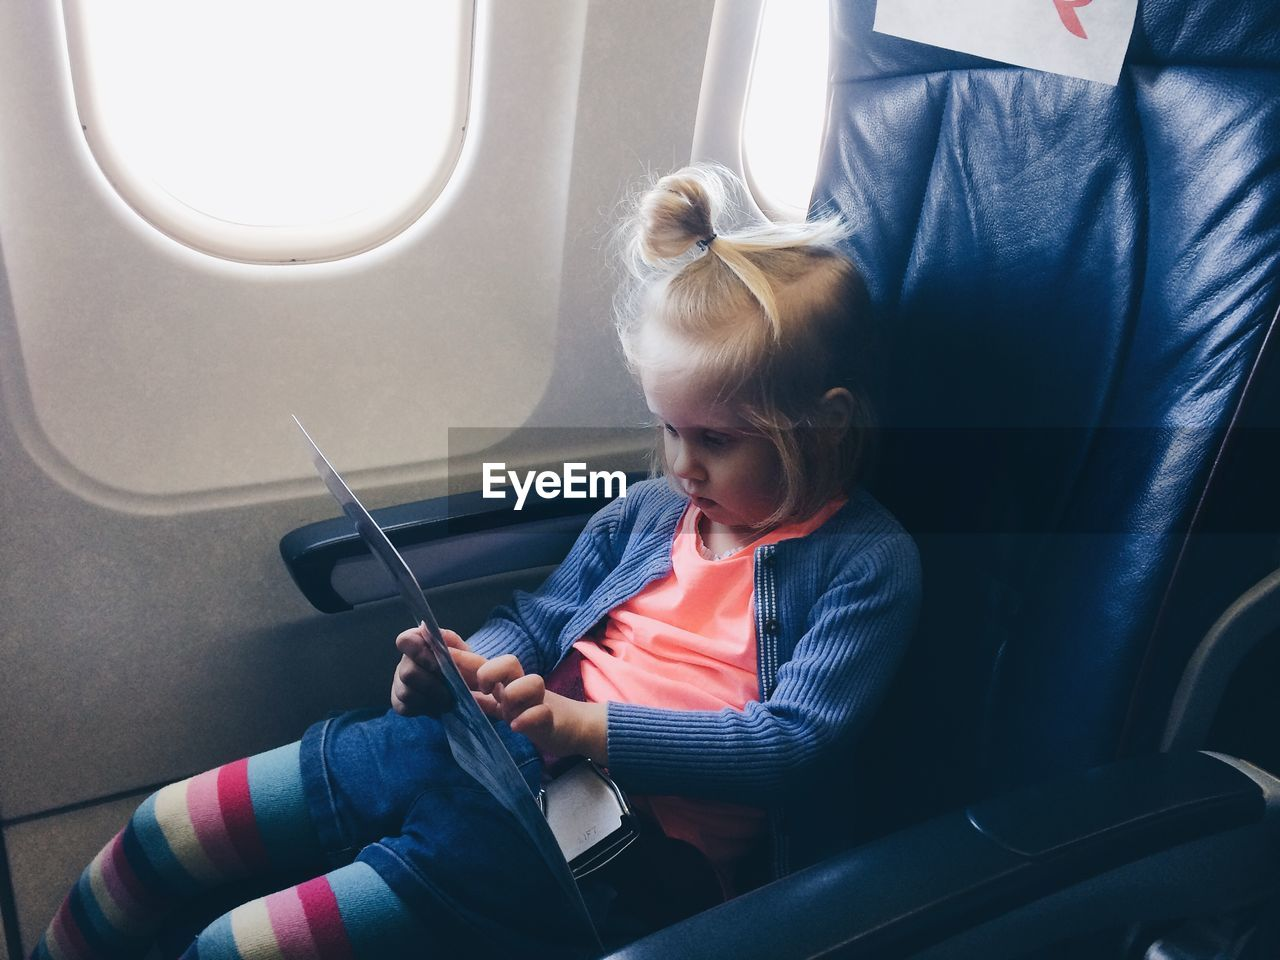 Girl reading chart while sitting by window in airplane